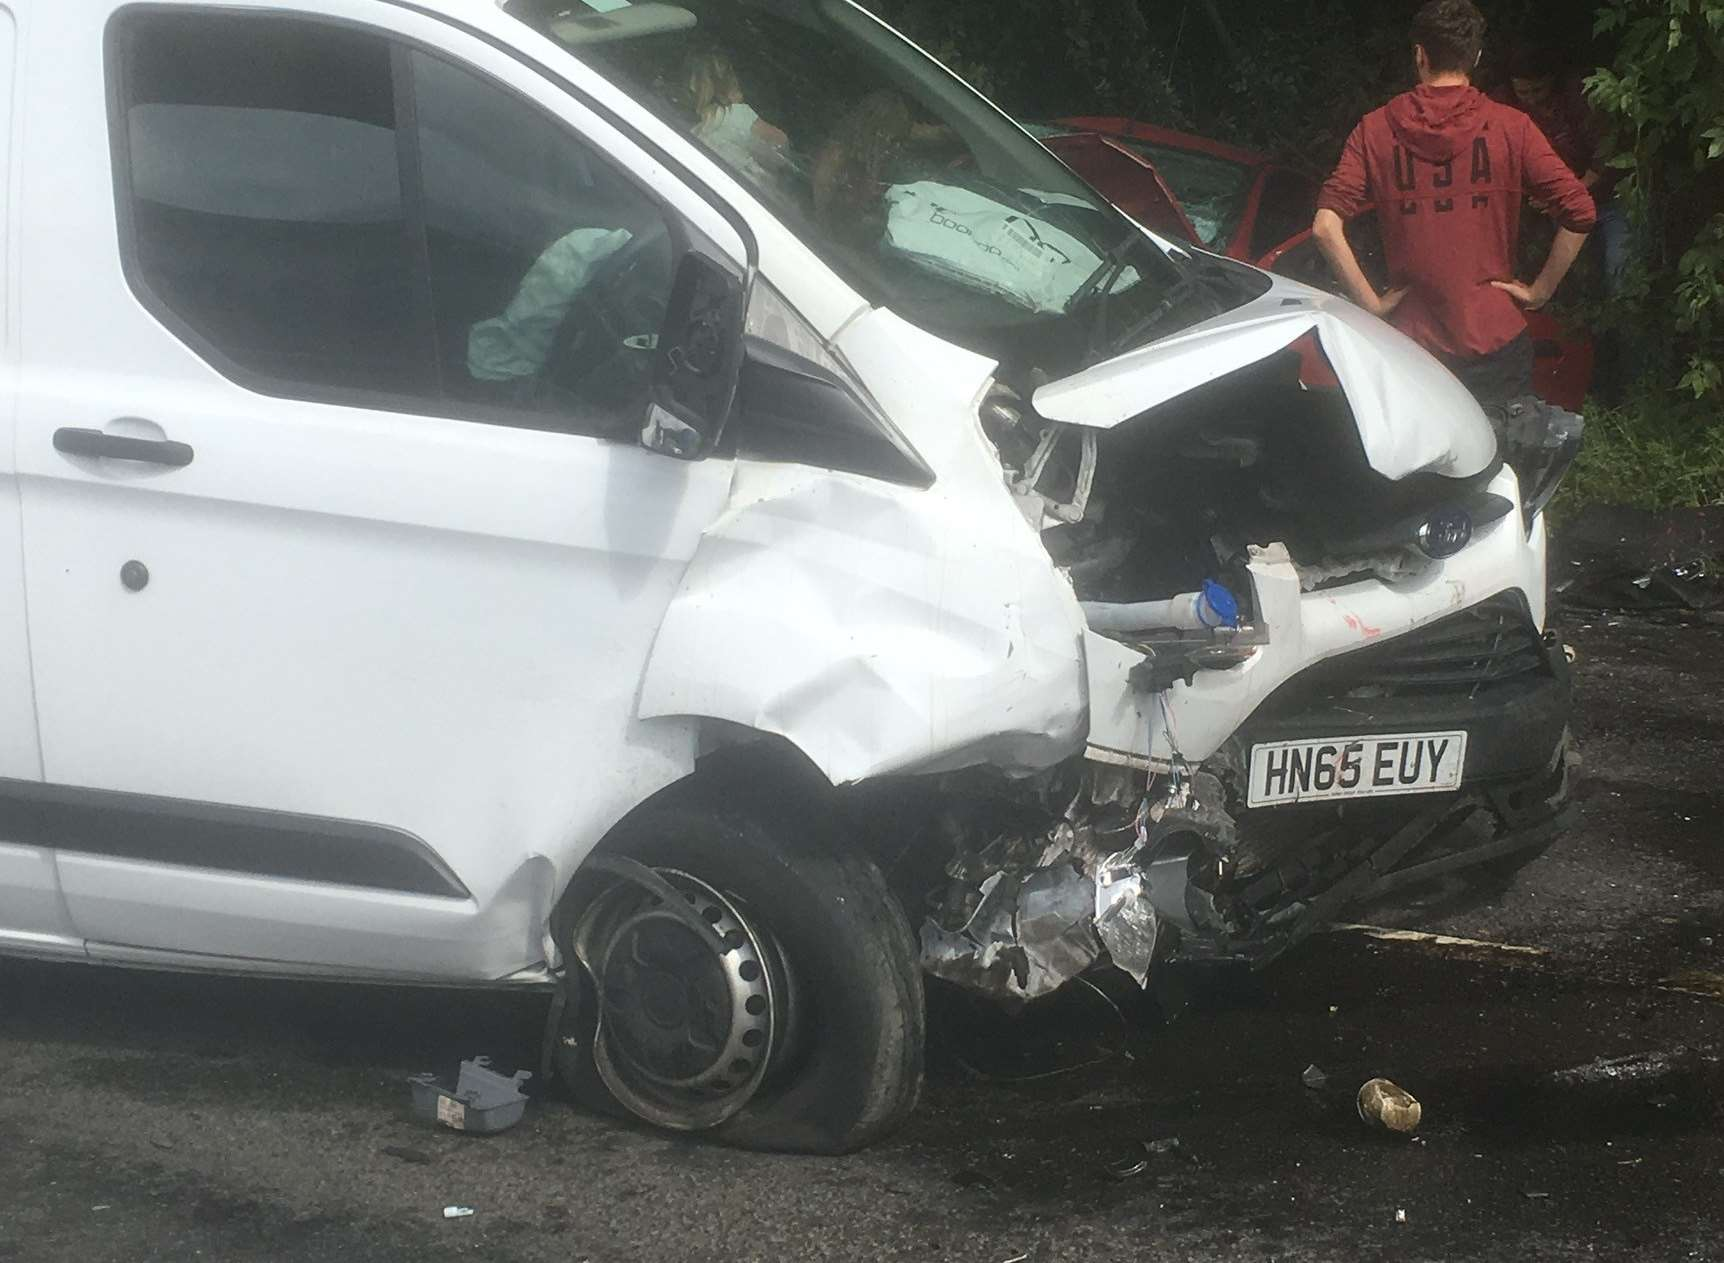 The van involved in the fatal crash